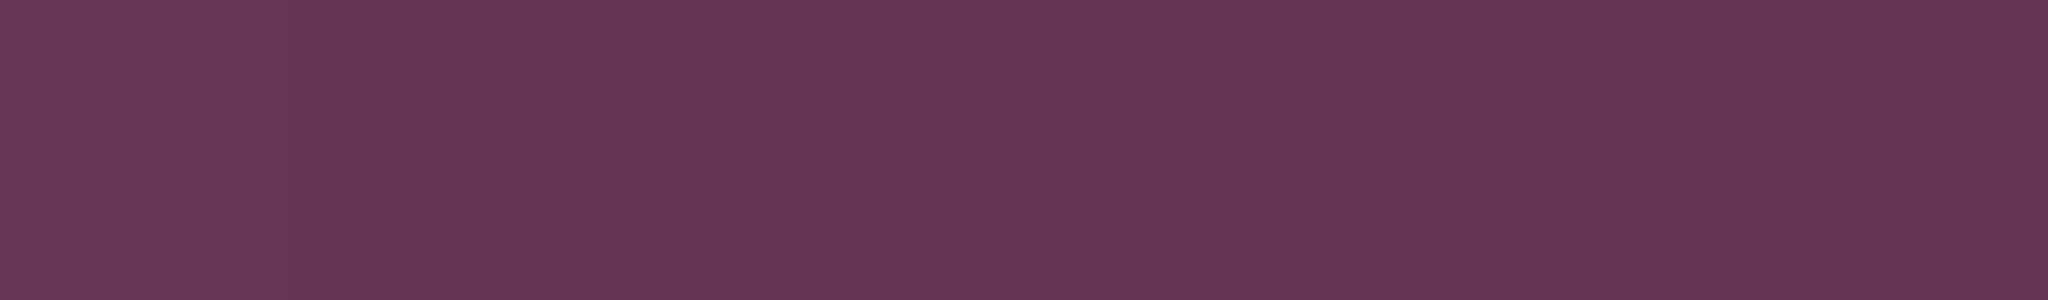 HSE 154418 Chant ABS avec feuille Acrylique Violet Lisse Brillant 90° Hot-Air